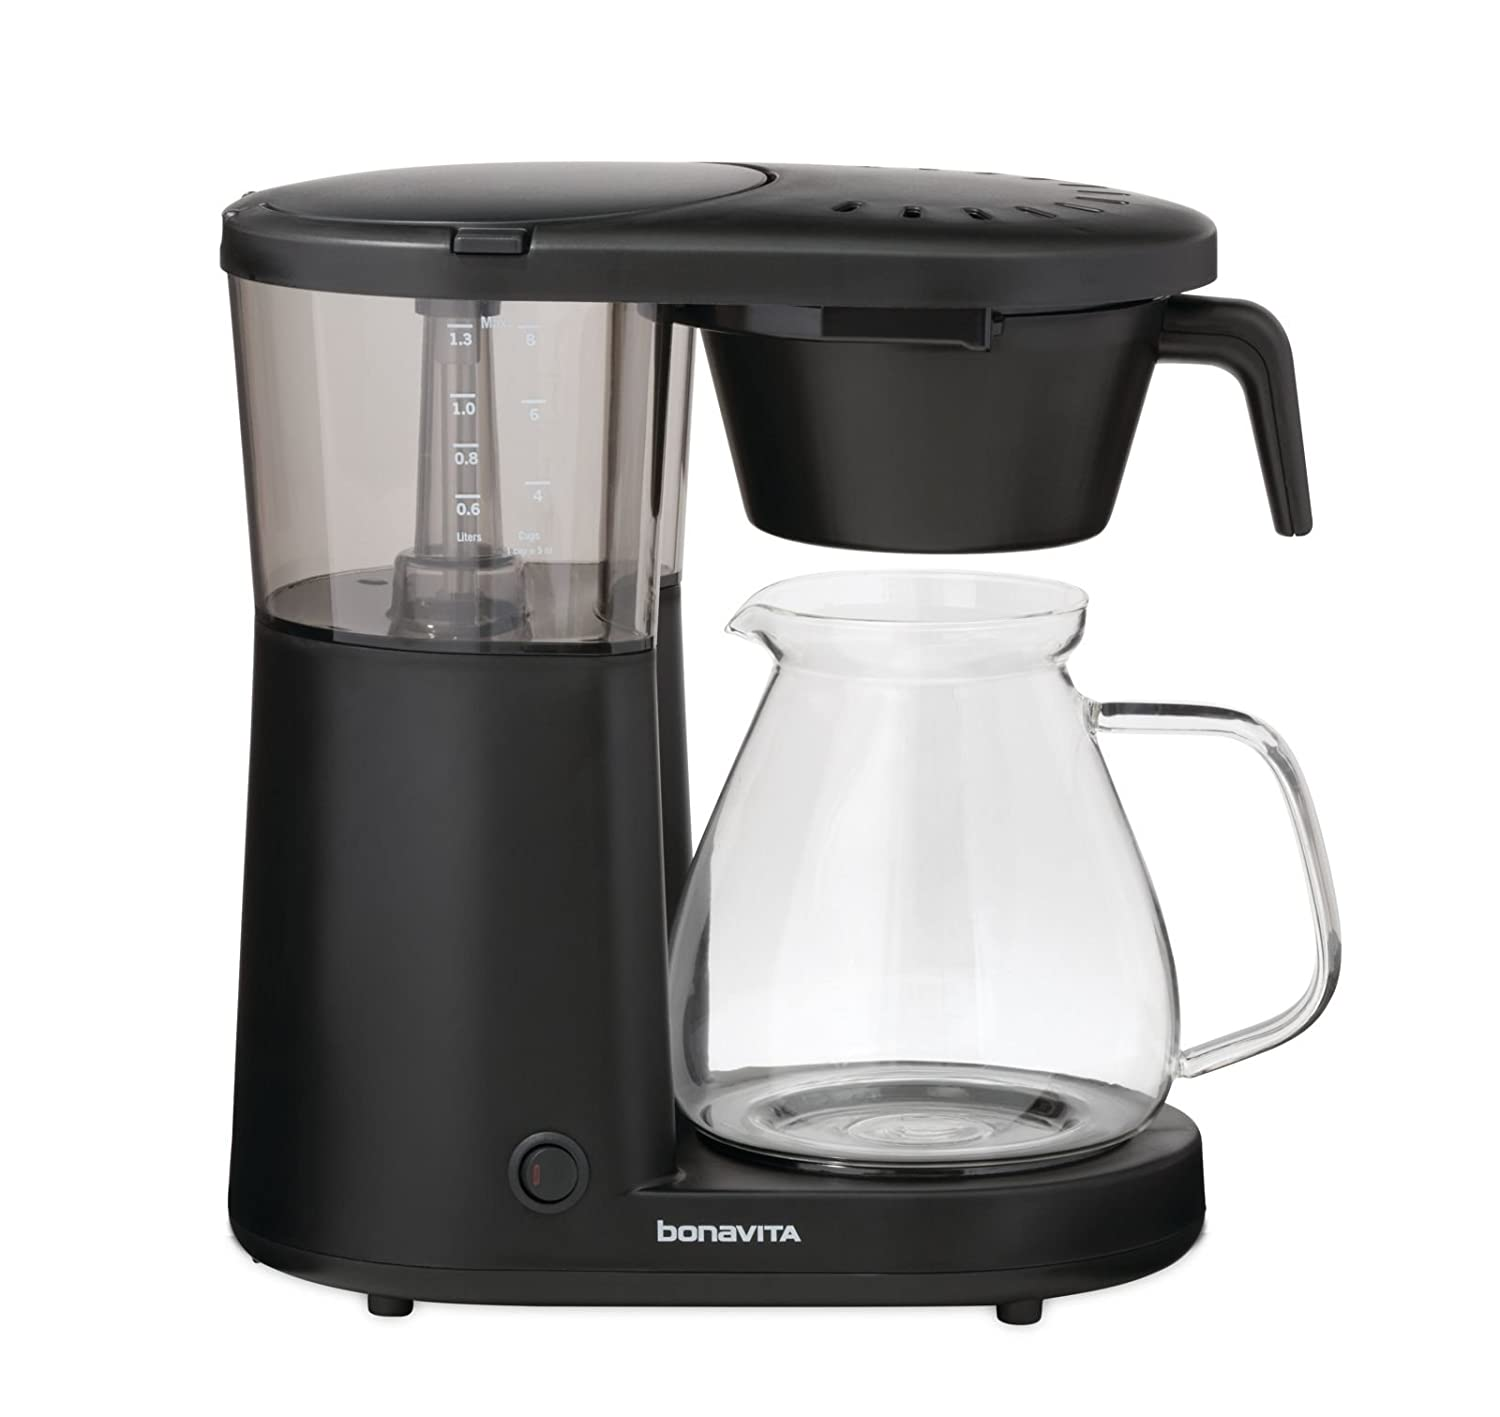 "Bonavita BV1901PW Metropolitan One-Touch Coffee Brewer Length: 12.60"" Width: 6.80"" Height: 12.20"" Black"